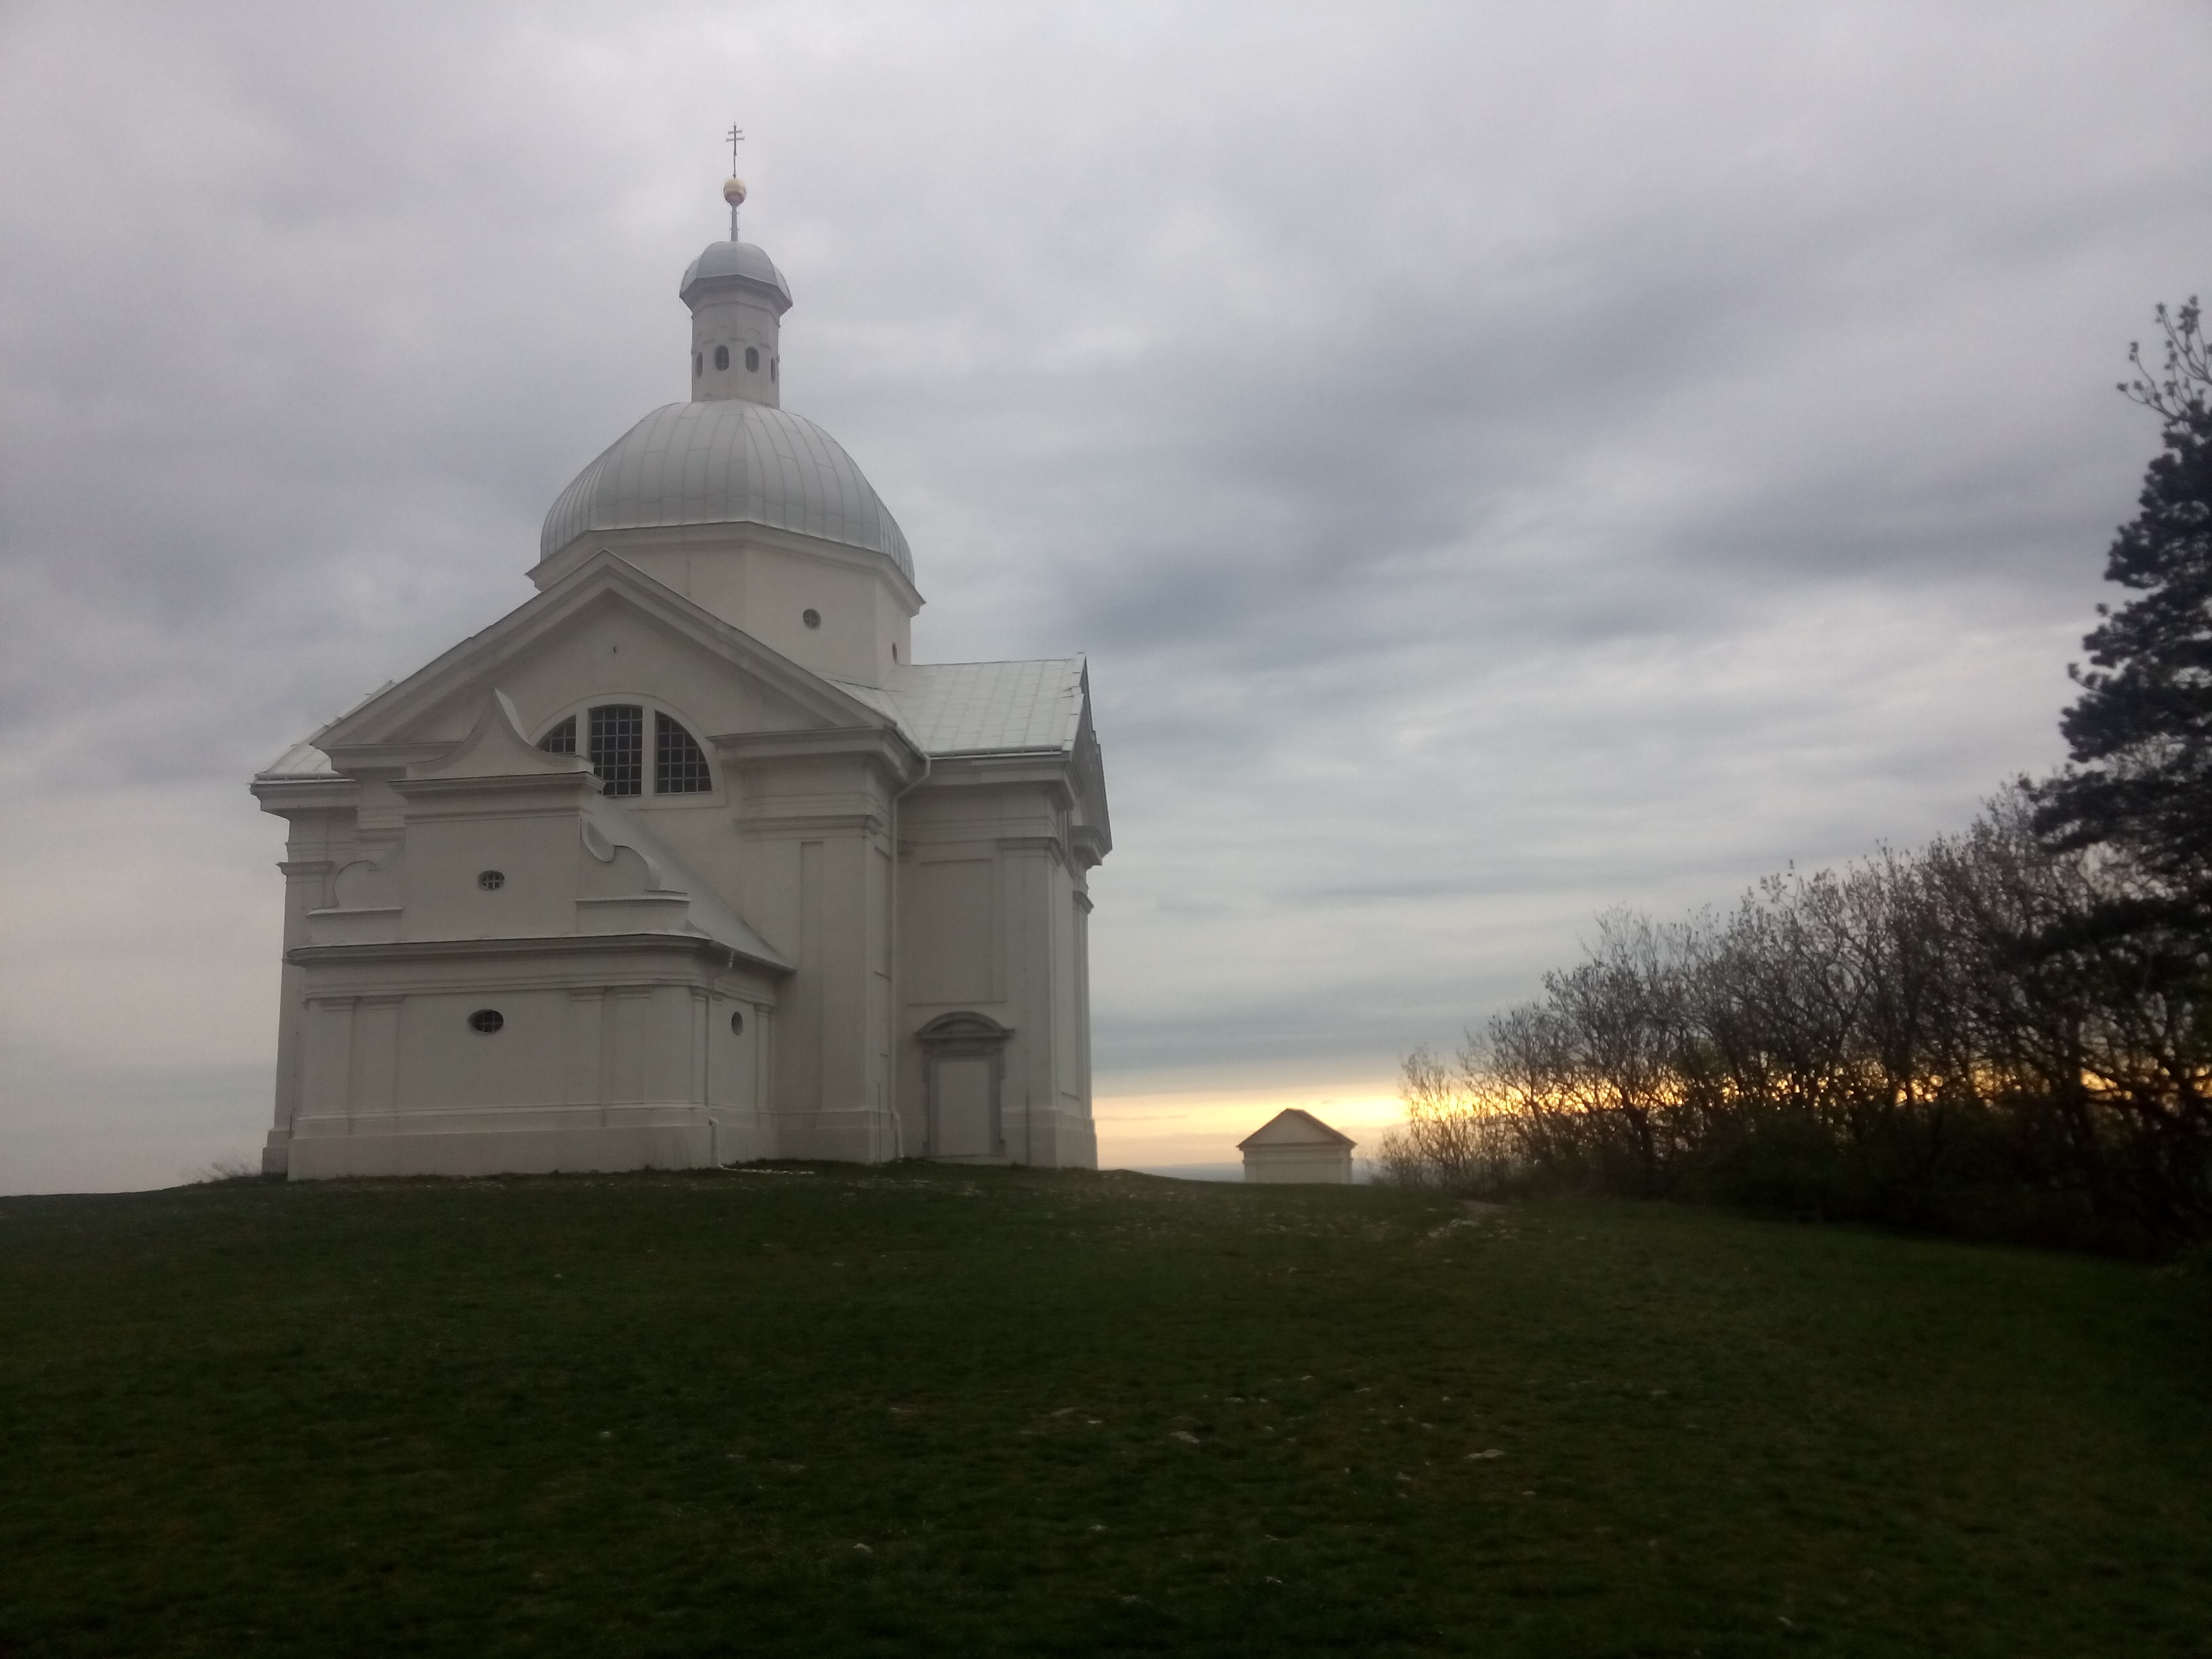 A white church on a grass field against a cloudy sky, with a sliver of sunset on the horizon